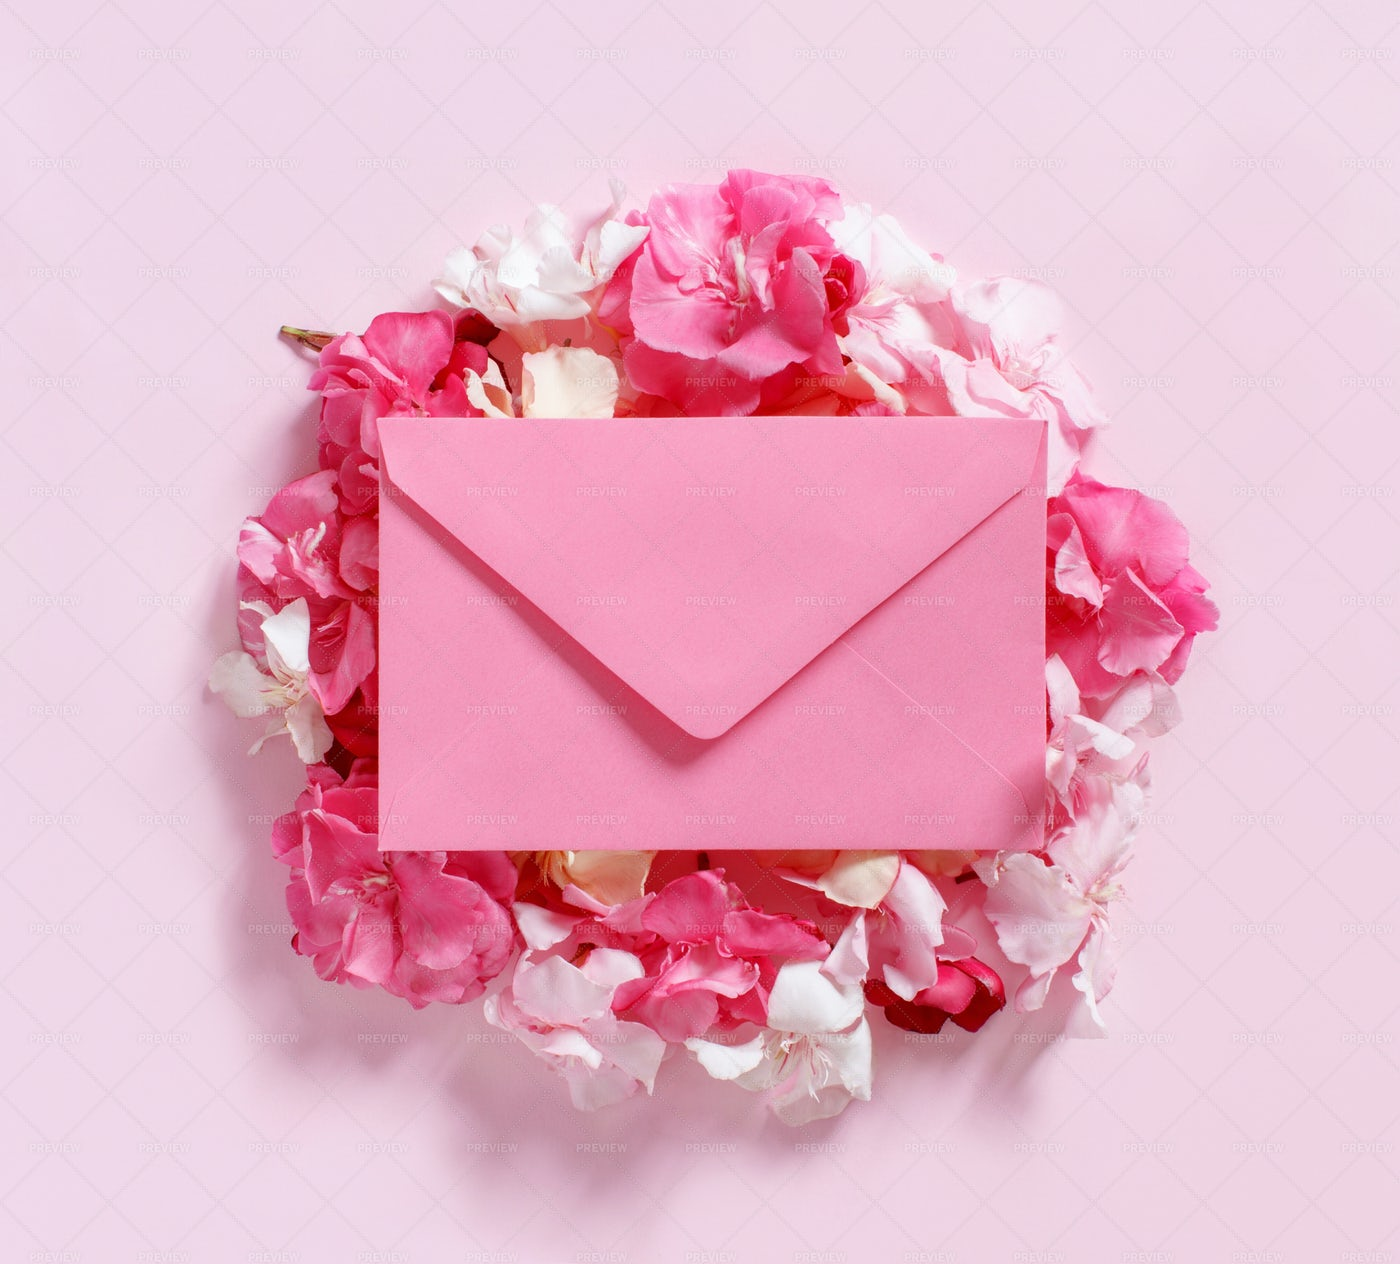 Pink Envelope On Flowers: Stock Photos